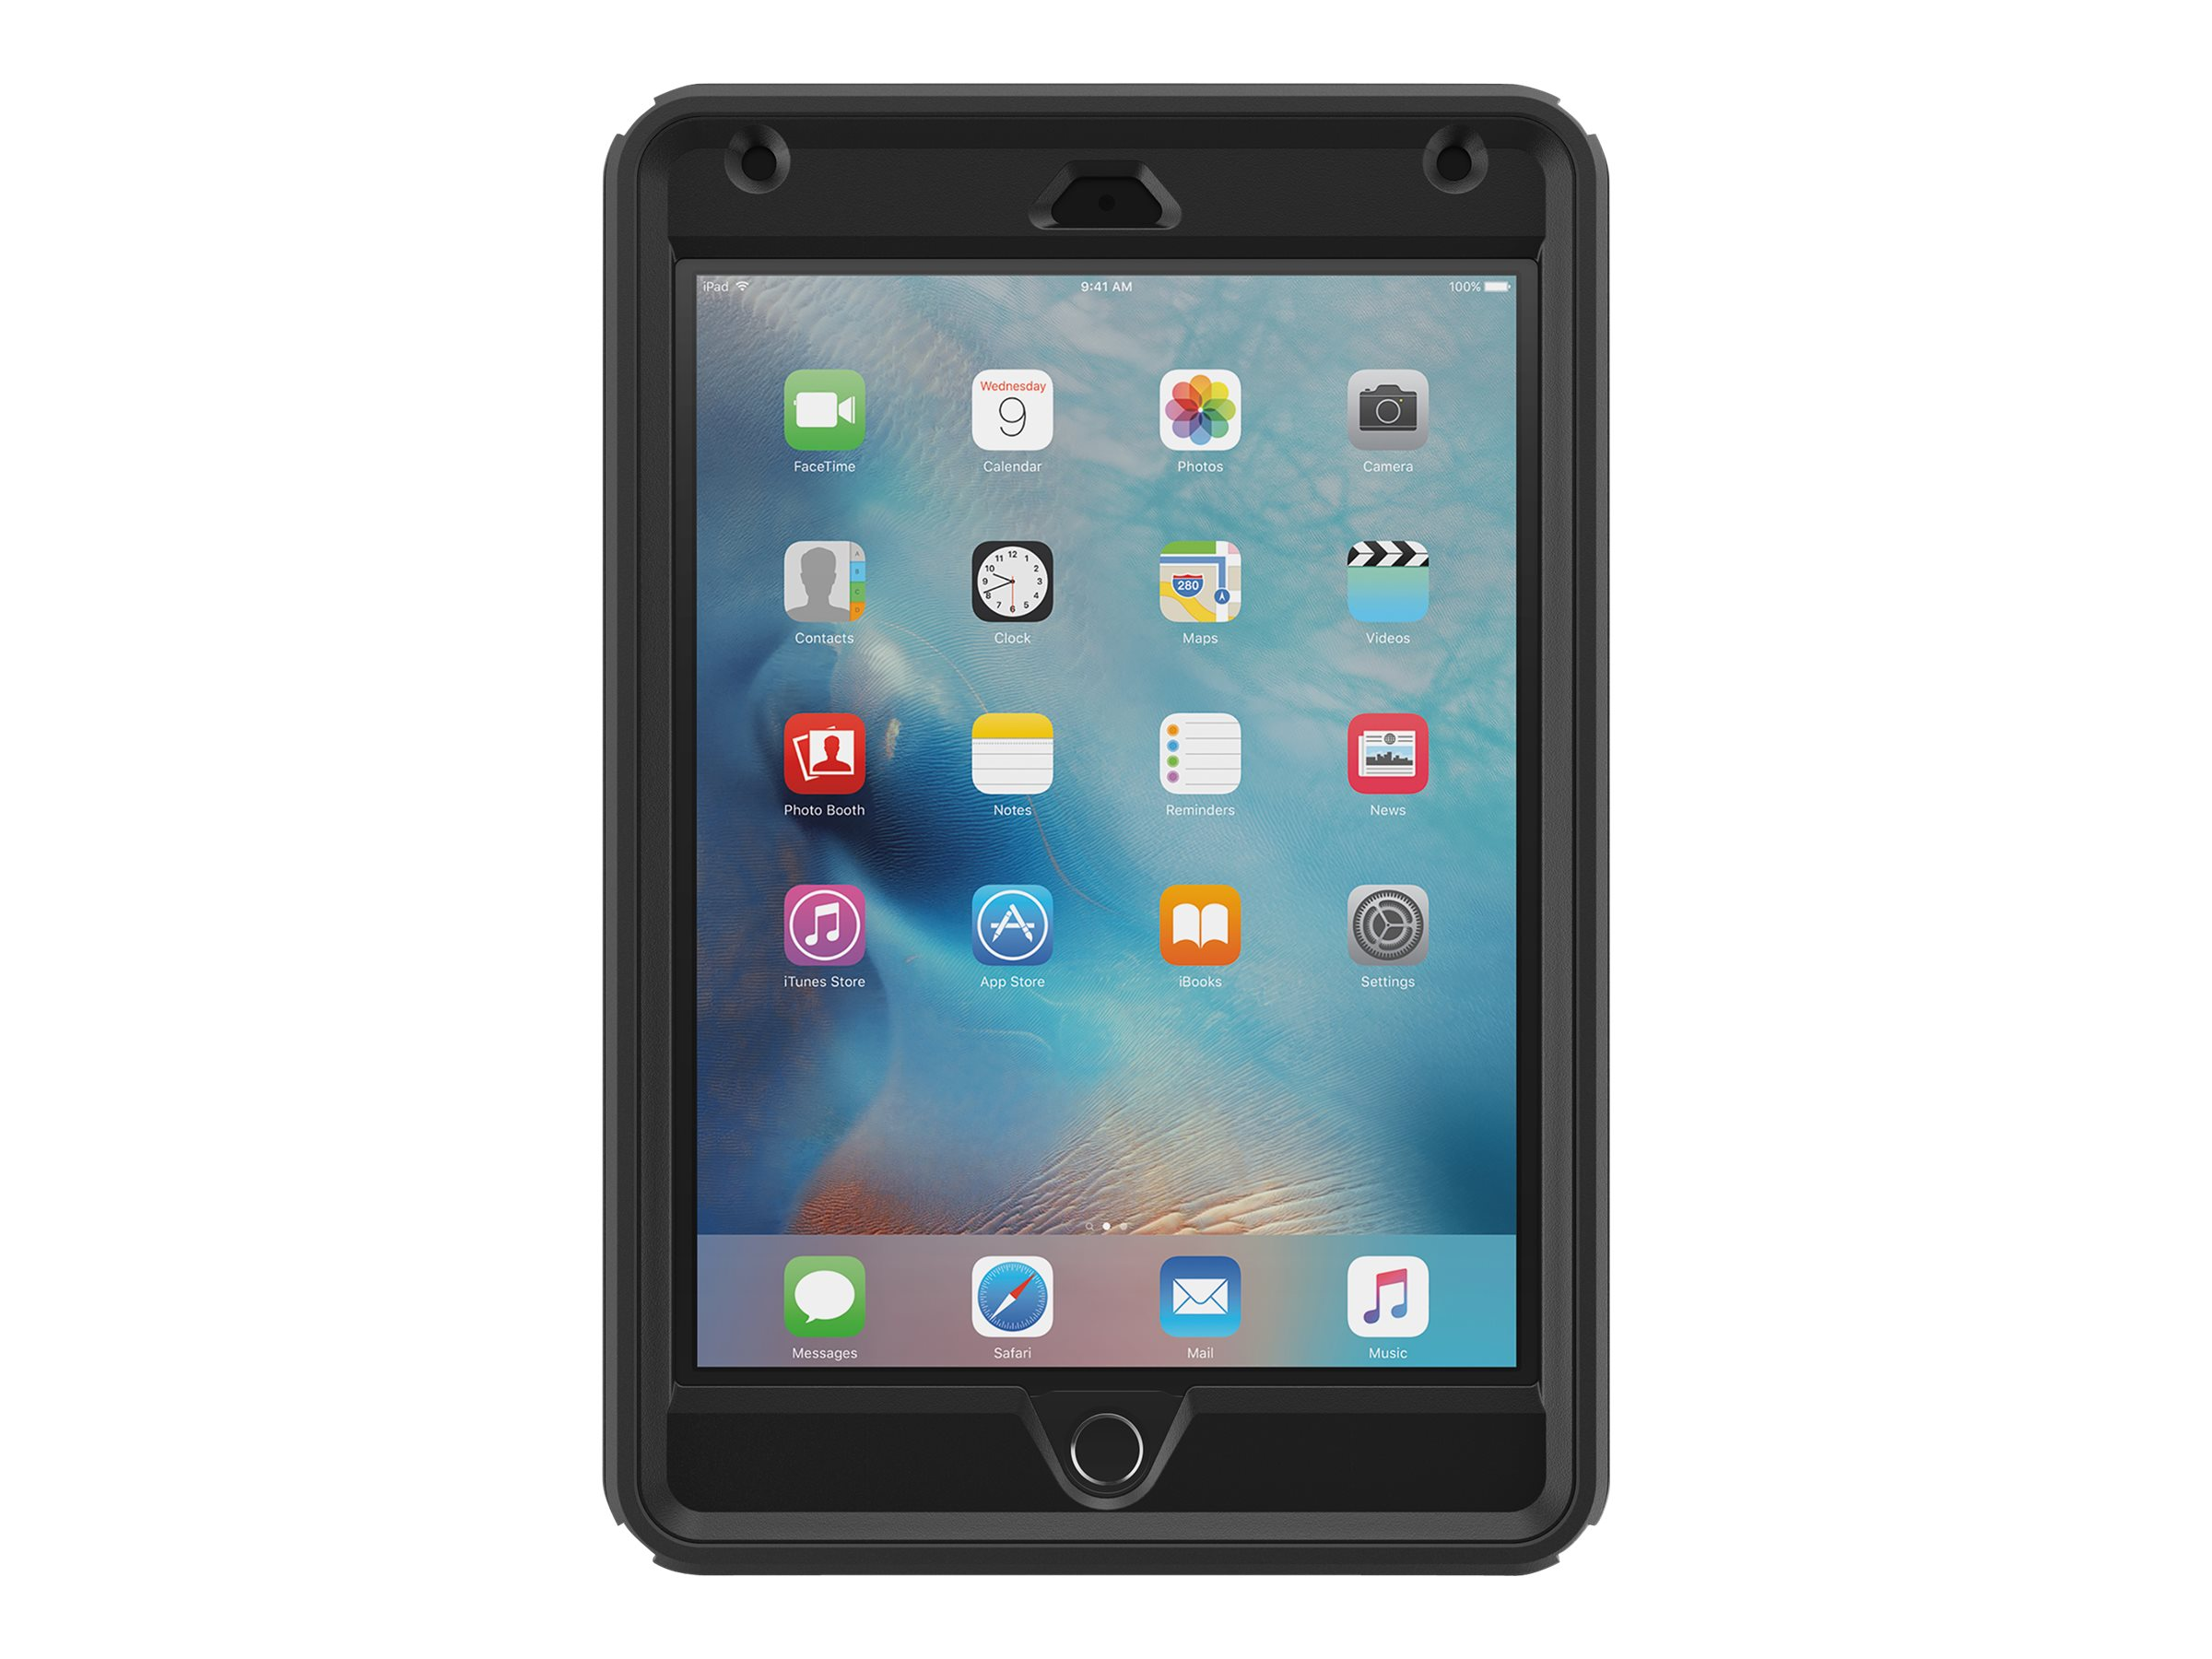 OtterBox Defender Case for iPad mini 4, Black, 77-52771, 30944643, Carrying Cases - Tablets & eReaders